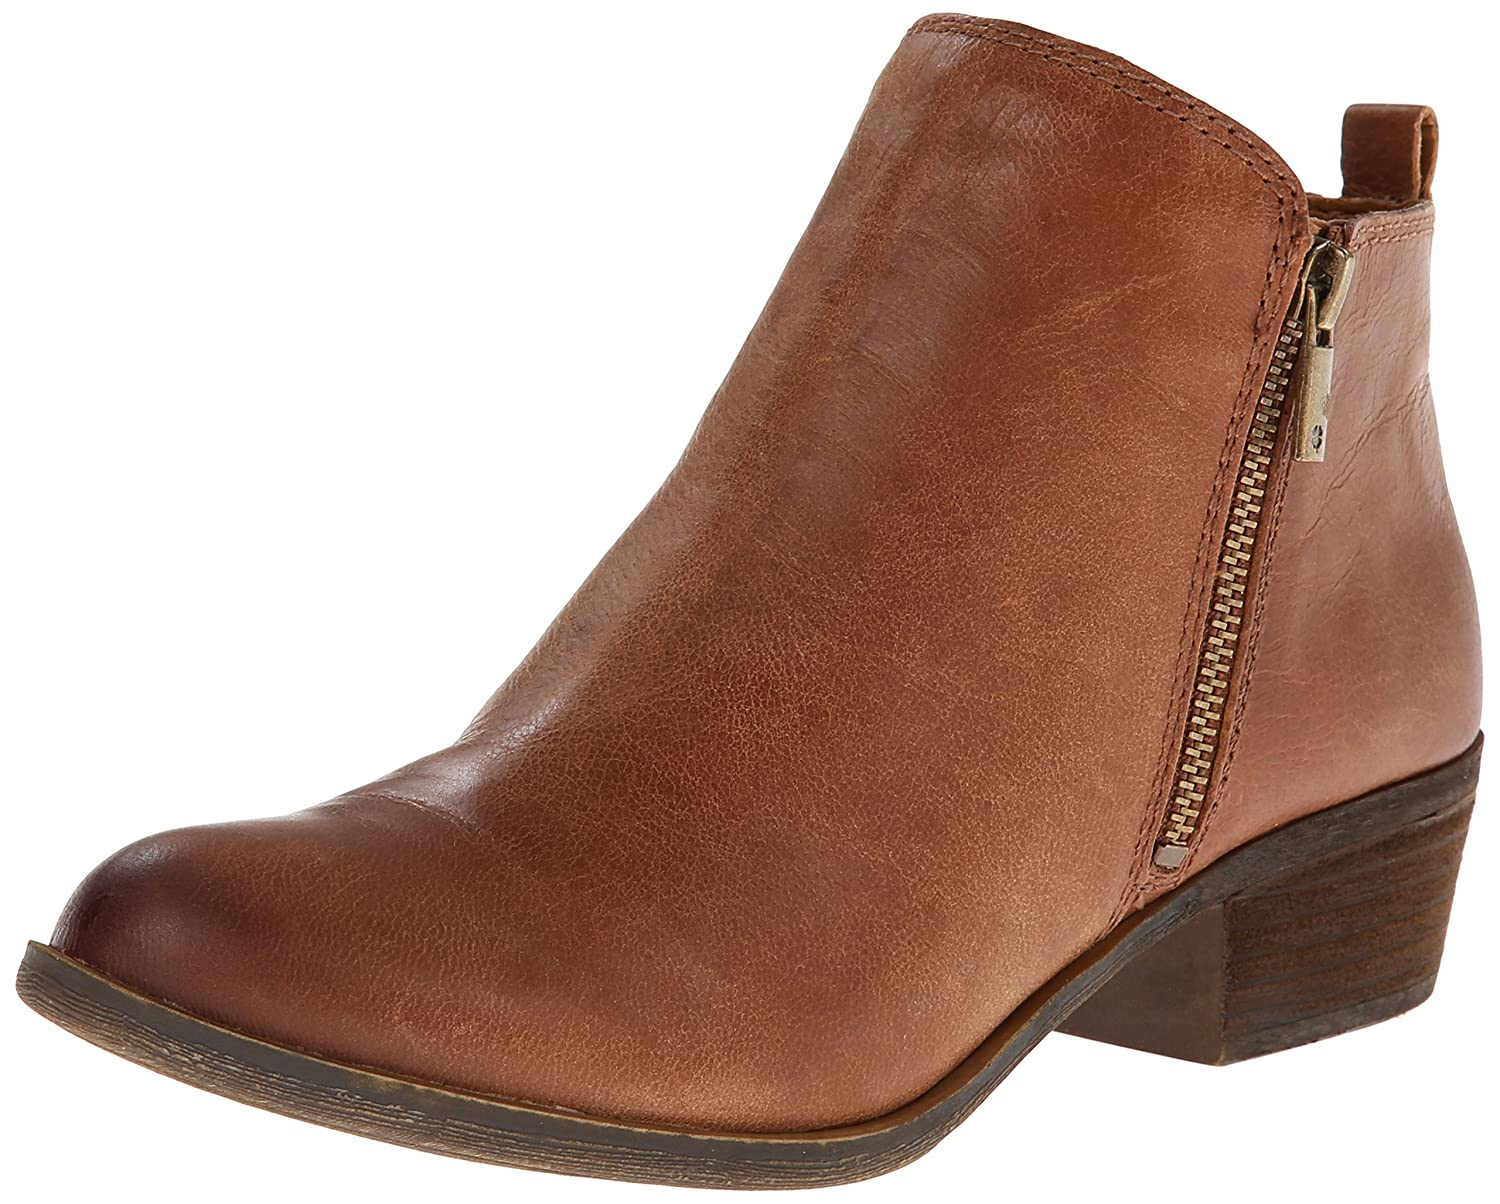 Lucky Brand Women's Basel Boot B015RKX0OK 7.5 C/D US|Toffee